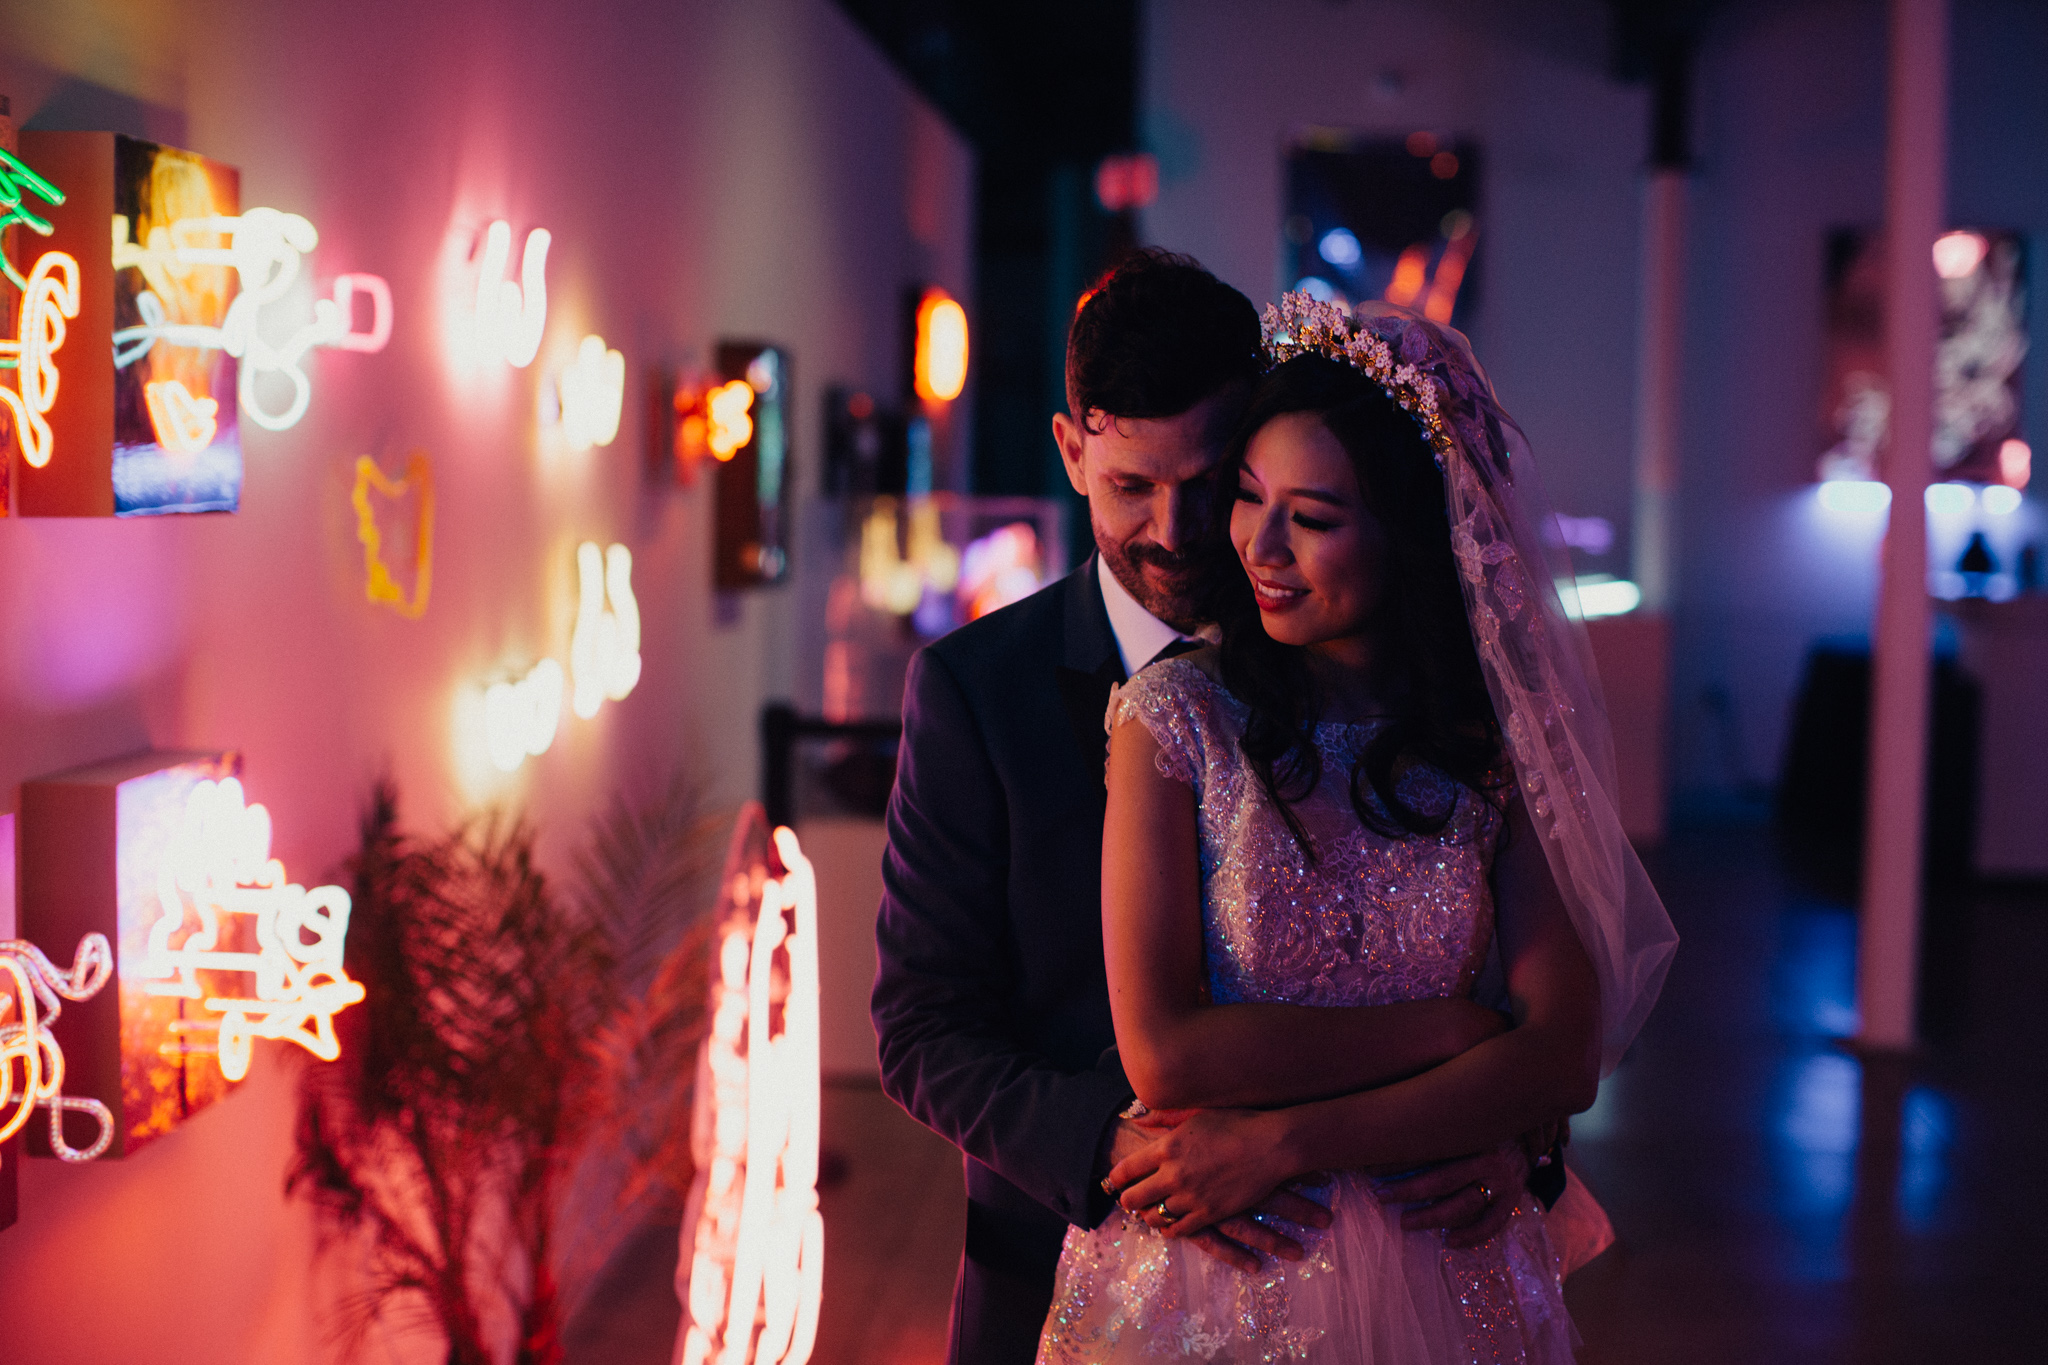 Mandy & Costanza's Museum of Neon Art Wedding